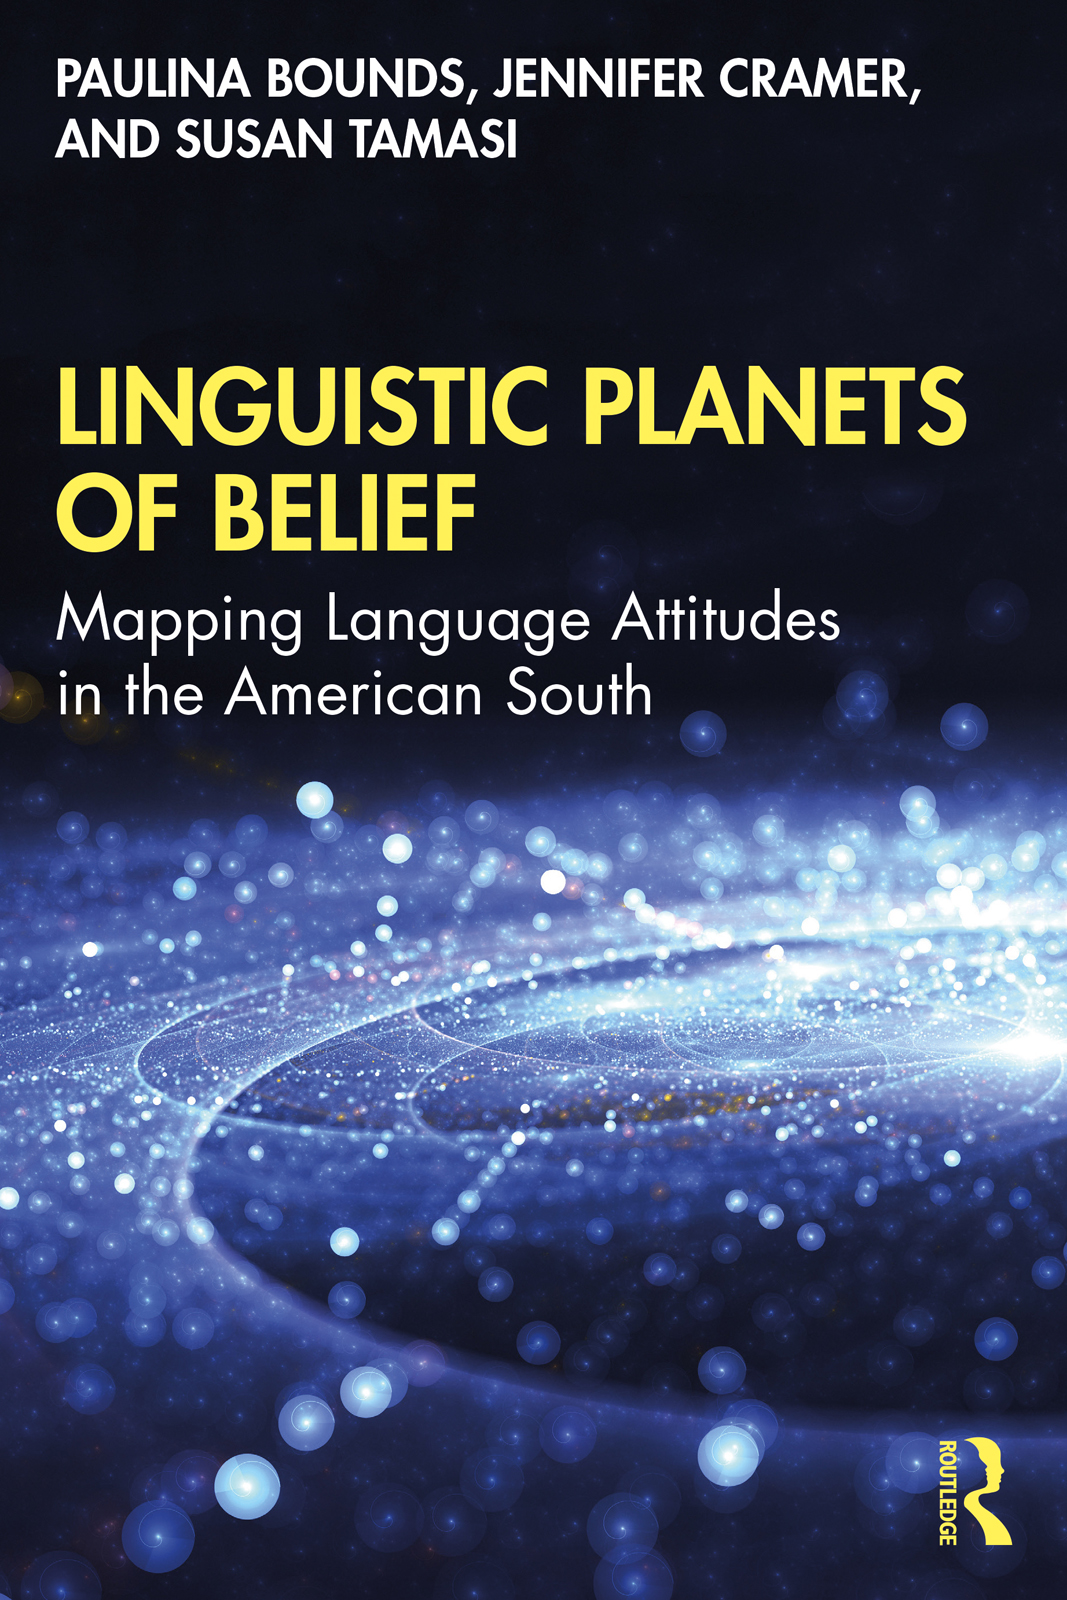 Linguistic Planets of Belief